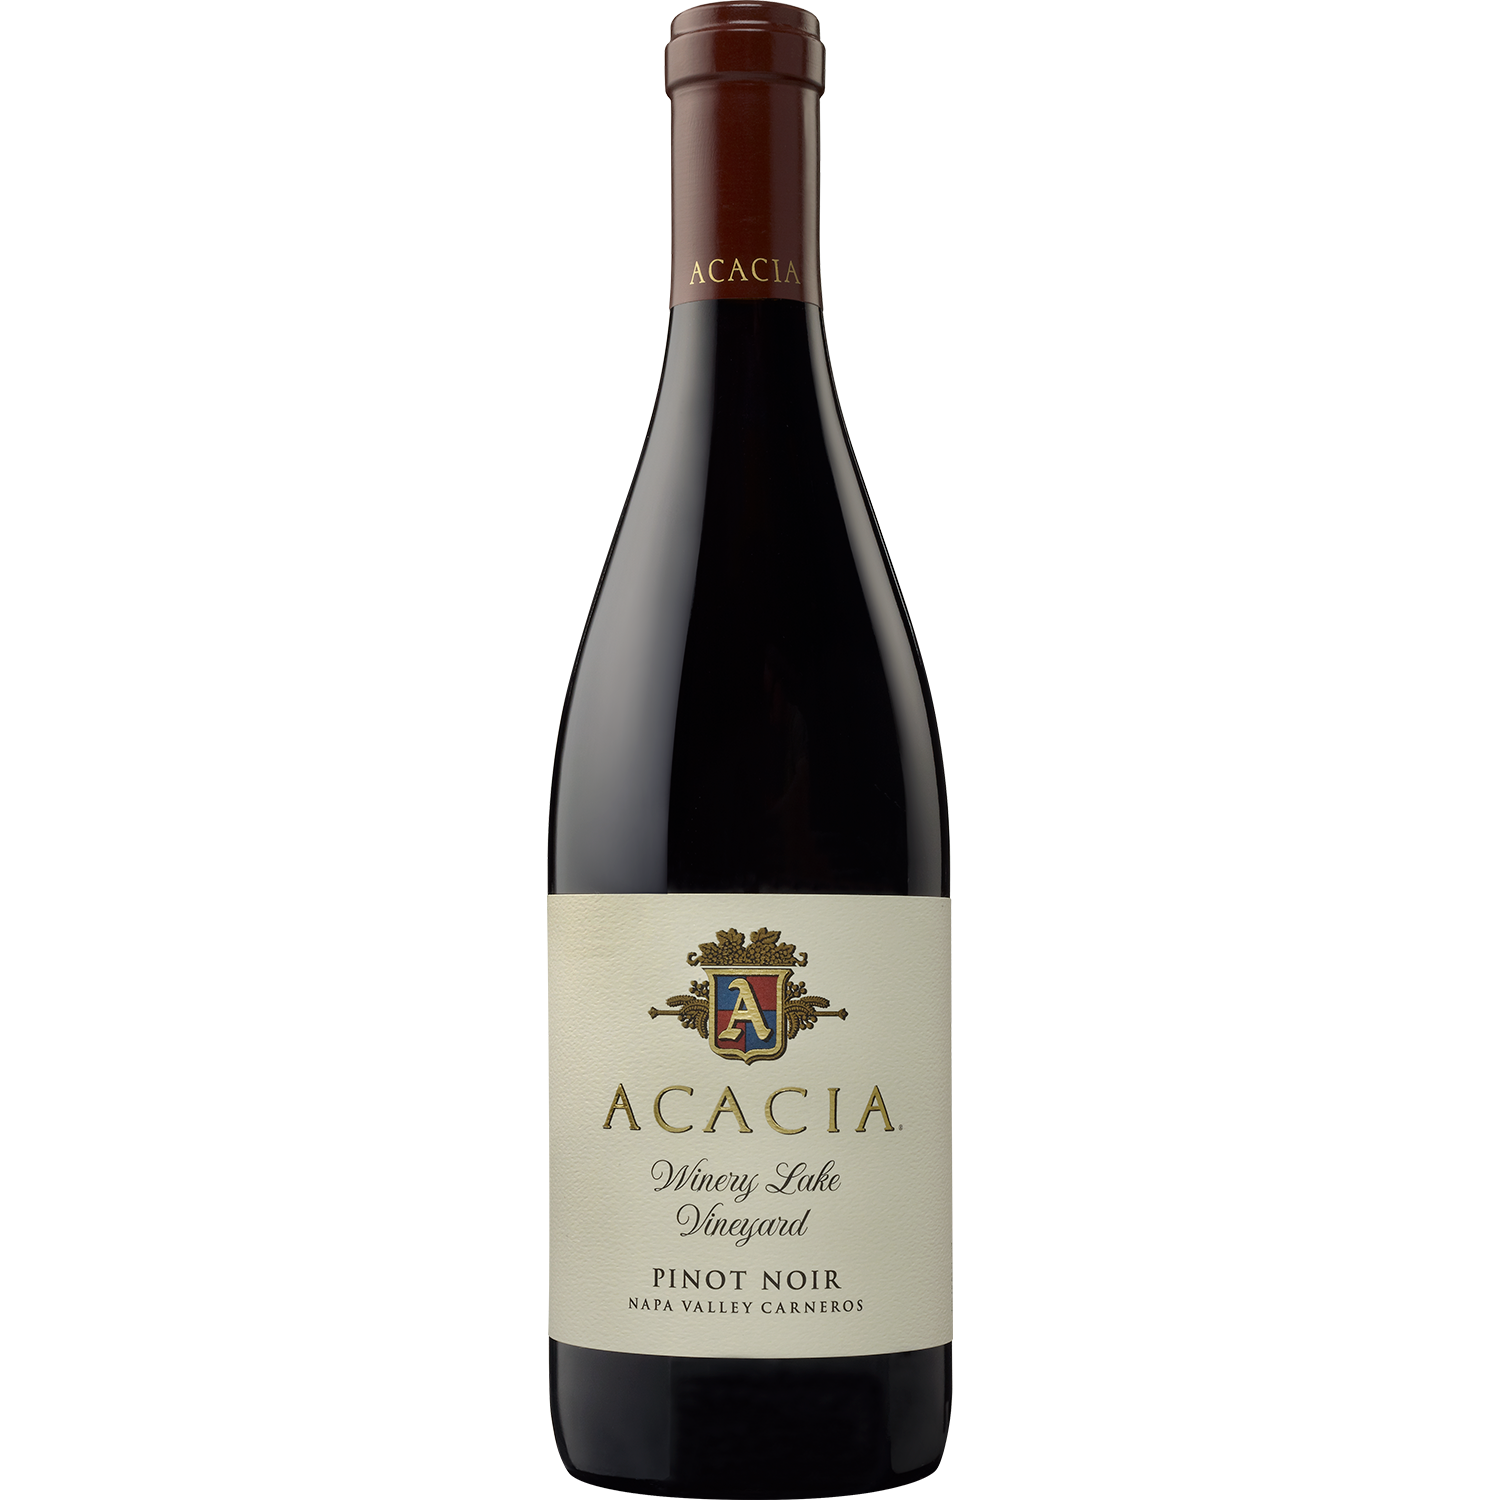 Acacia 2016 Careneros Winery Lake Pinot Noir-750